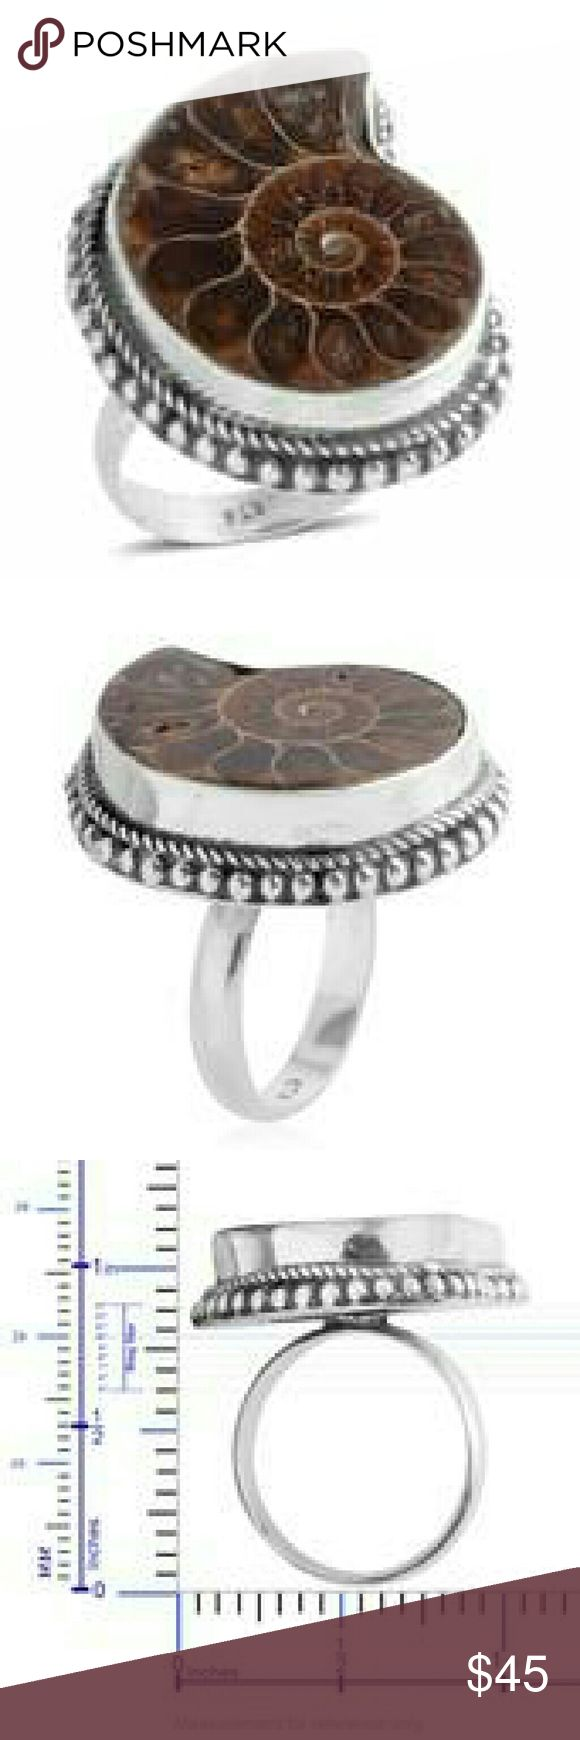 🎄NEW🎄BALI HANDCRAFTED STERLING SILVER RING BALI LEGACY COLLECTION HANDCRAFTED GENUINE AMMONITE STERLING SILVER / NICKEL FREE RING TCW -22.00 BALI LEGACY COLLECTION Jewelry Rings